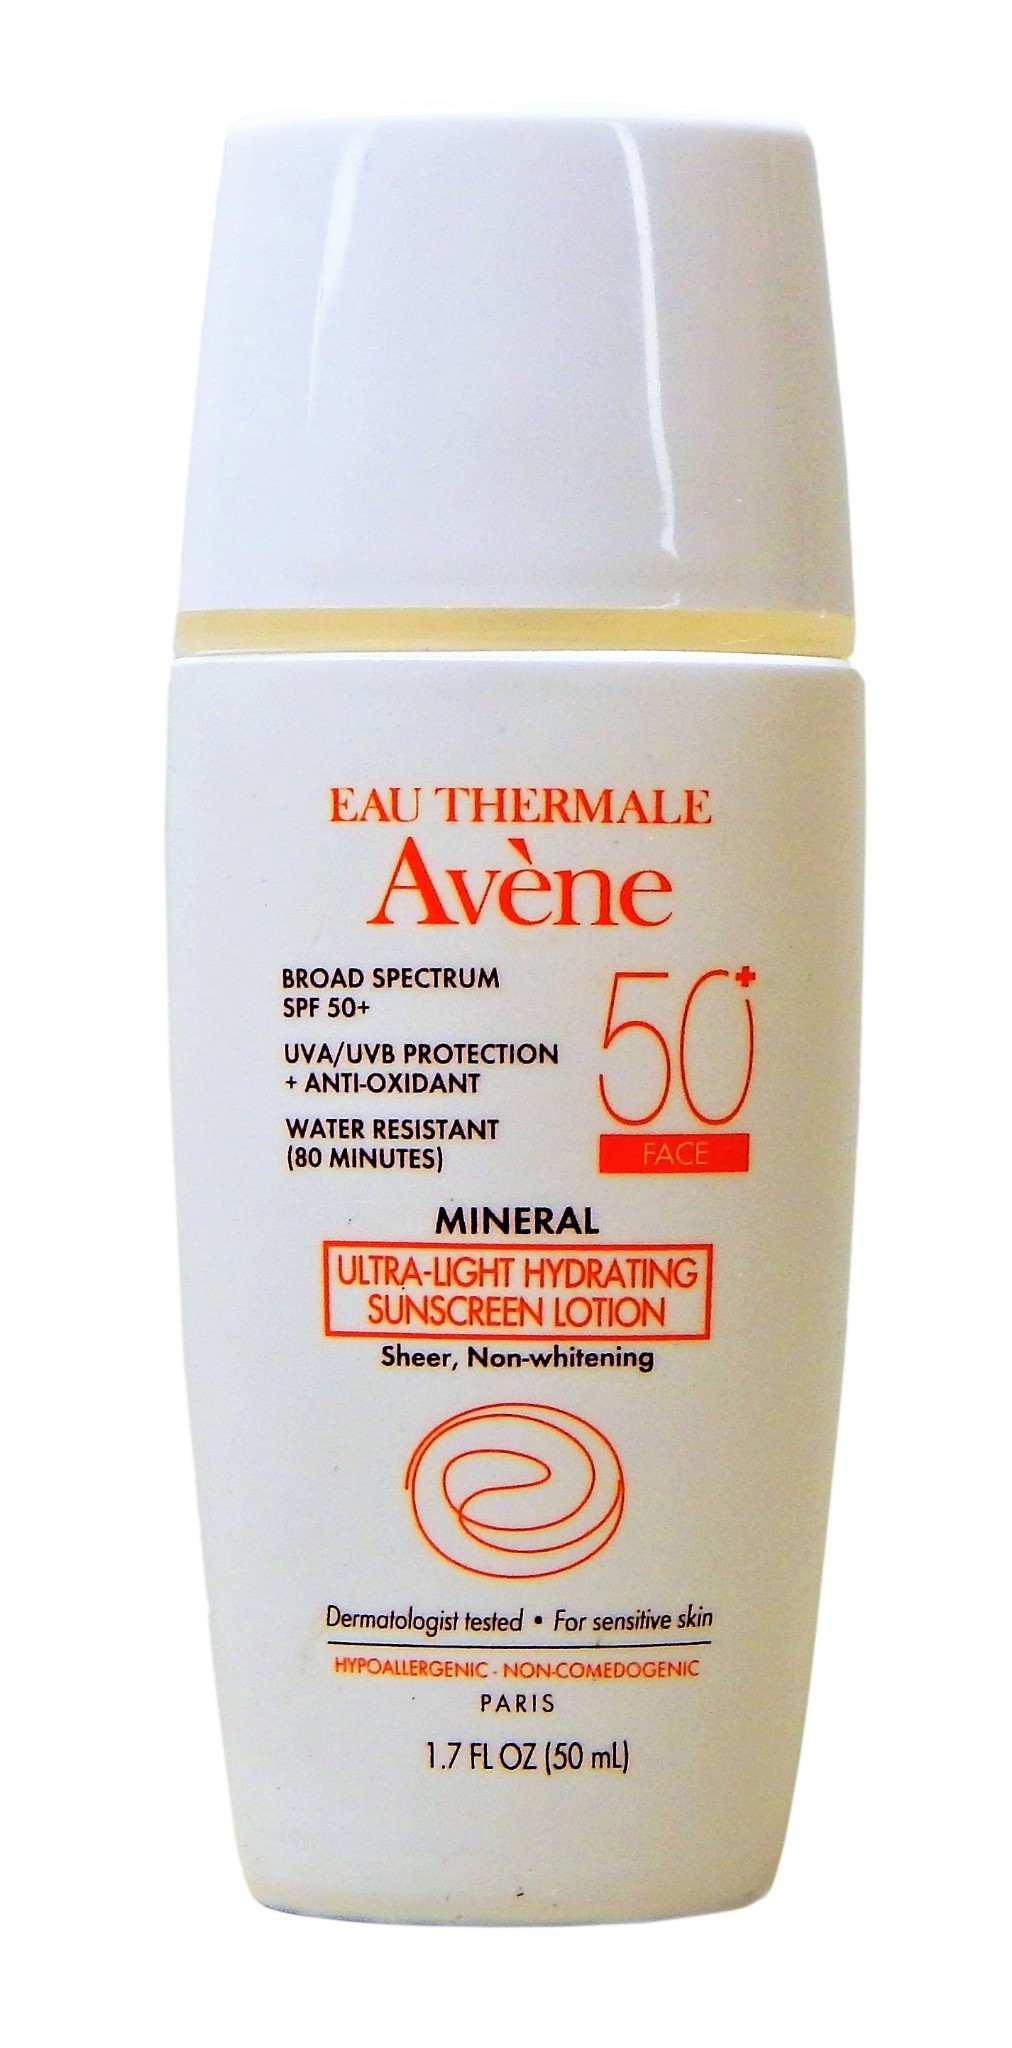 ec31ac92a992 NEW Eau Thermale Avene Mineral Ultra-Light Hydrating Sunscreen Lotion Sheer